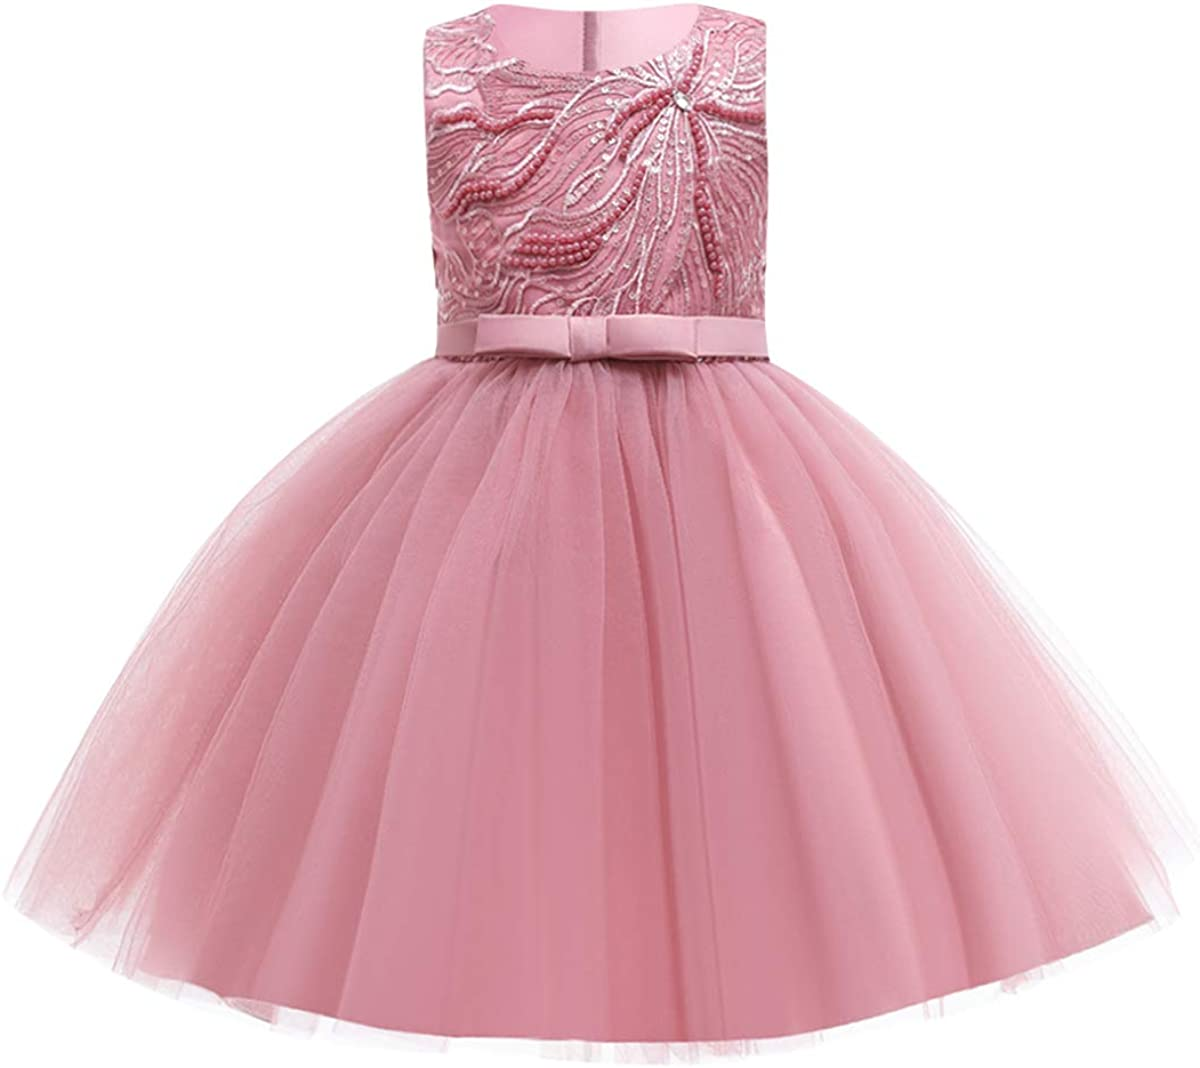 Flower Girls Wedding Bridesmaid Dresses Lace Sequins Beads Tulle Party Princess Pageant Evening Short Prom Ball Gown